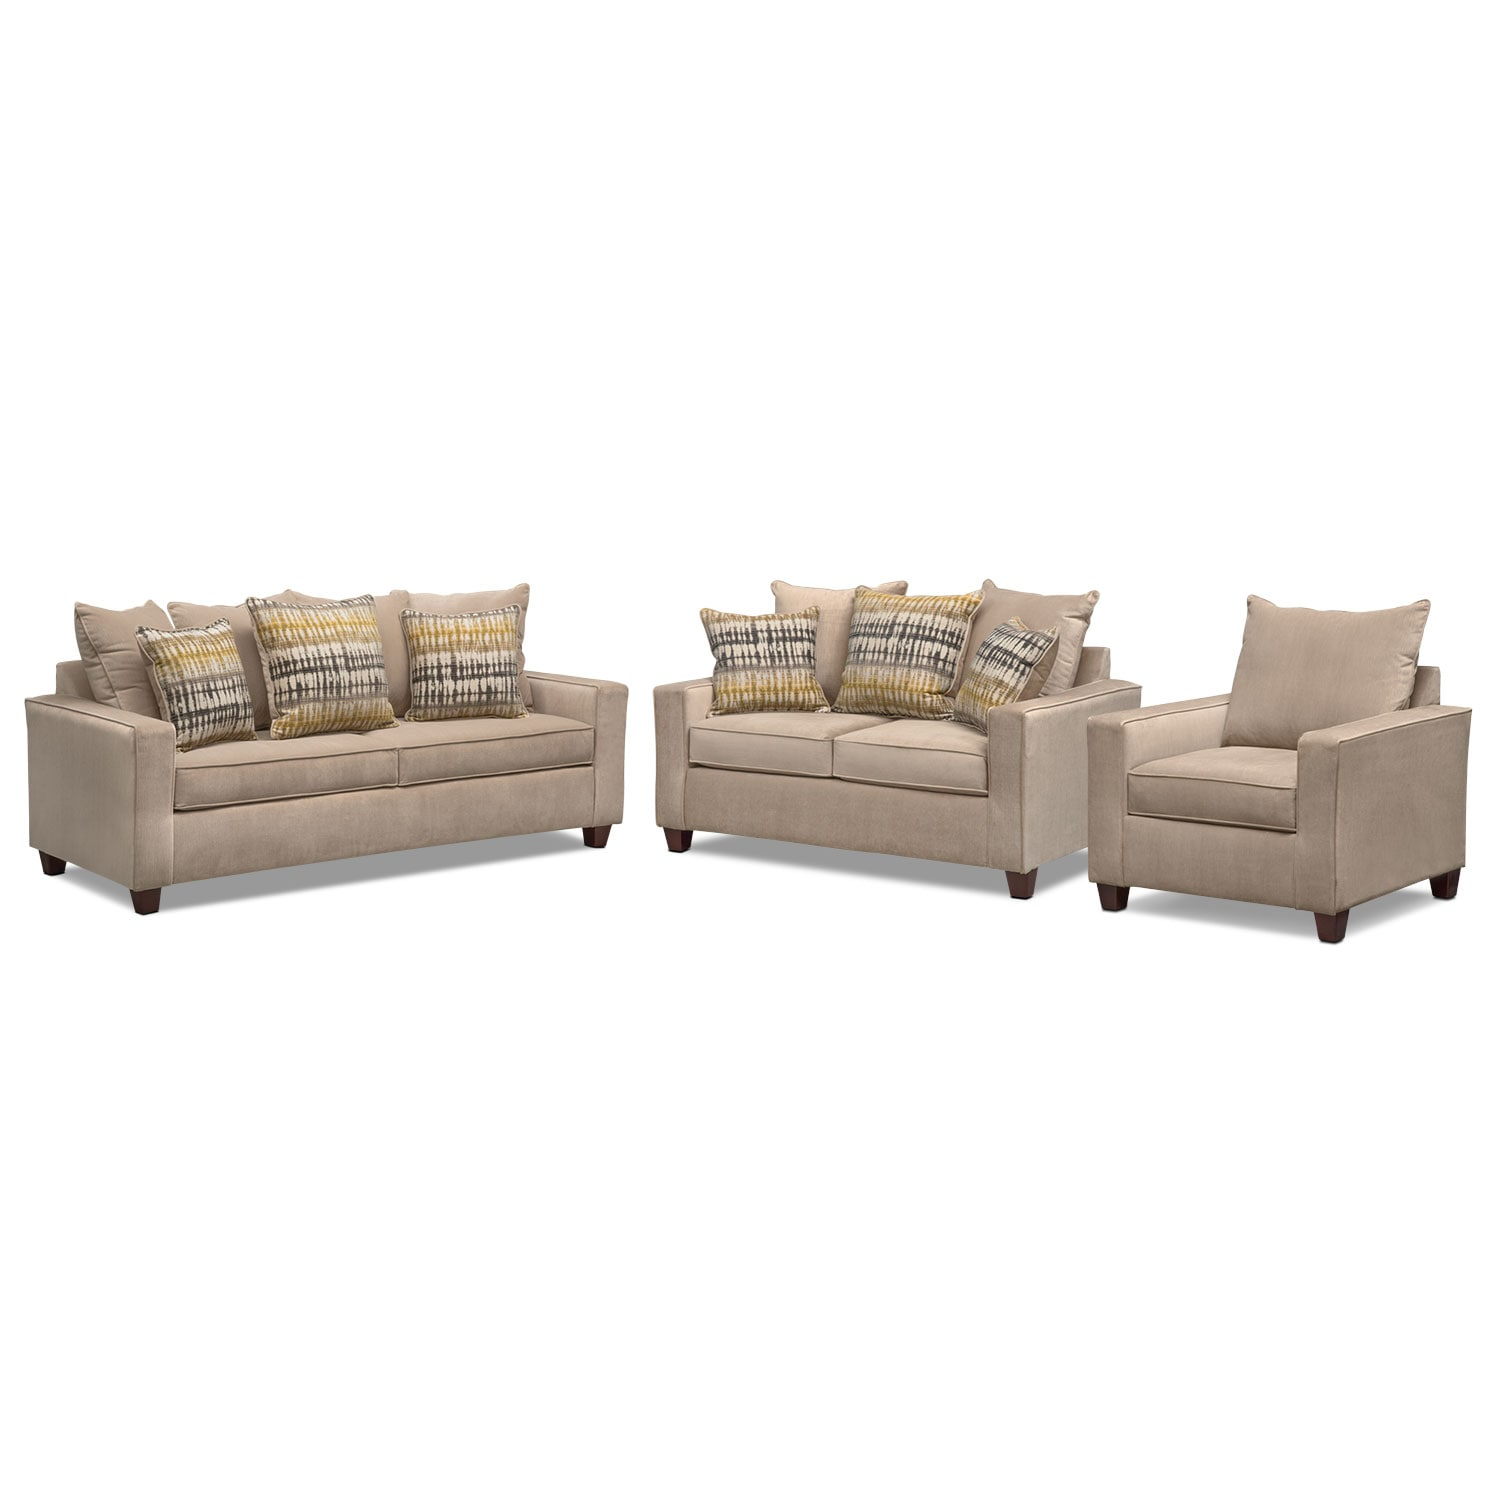 Bryden Sofa Loveseat And Chair Set Beige Value City Furniture  ~ Sofa Loveseat Chair Sets